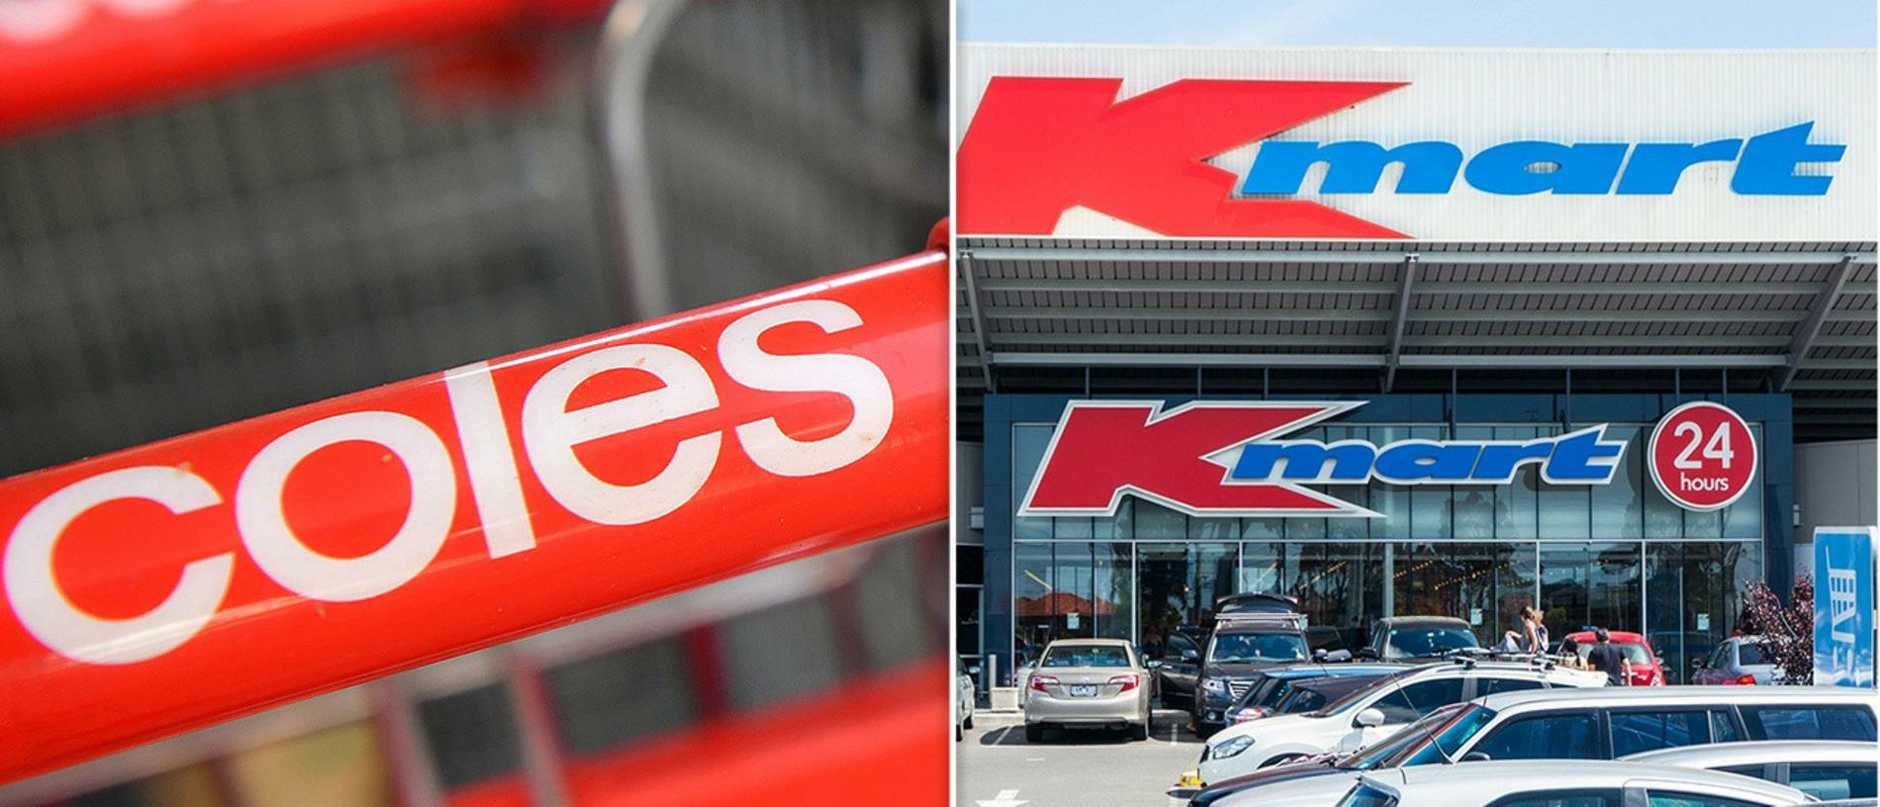 Coles takes on kmart in new offer